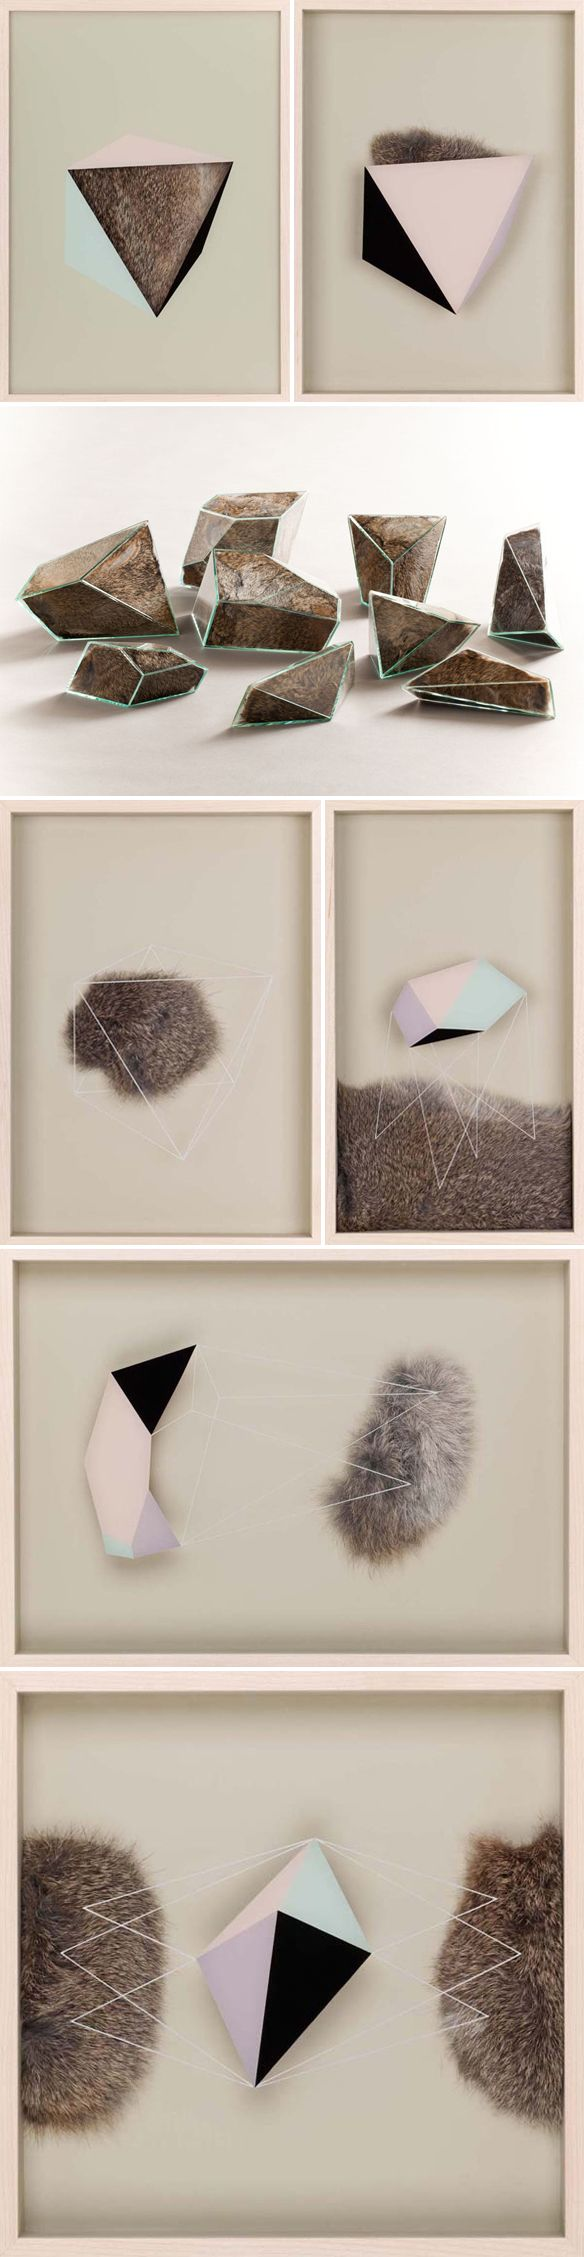 marcela cardenas - mixed media (fur & geometrics!) <3